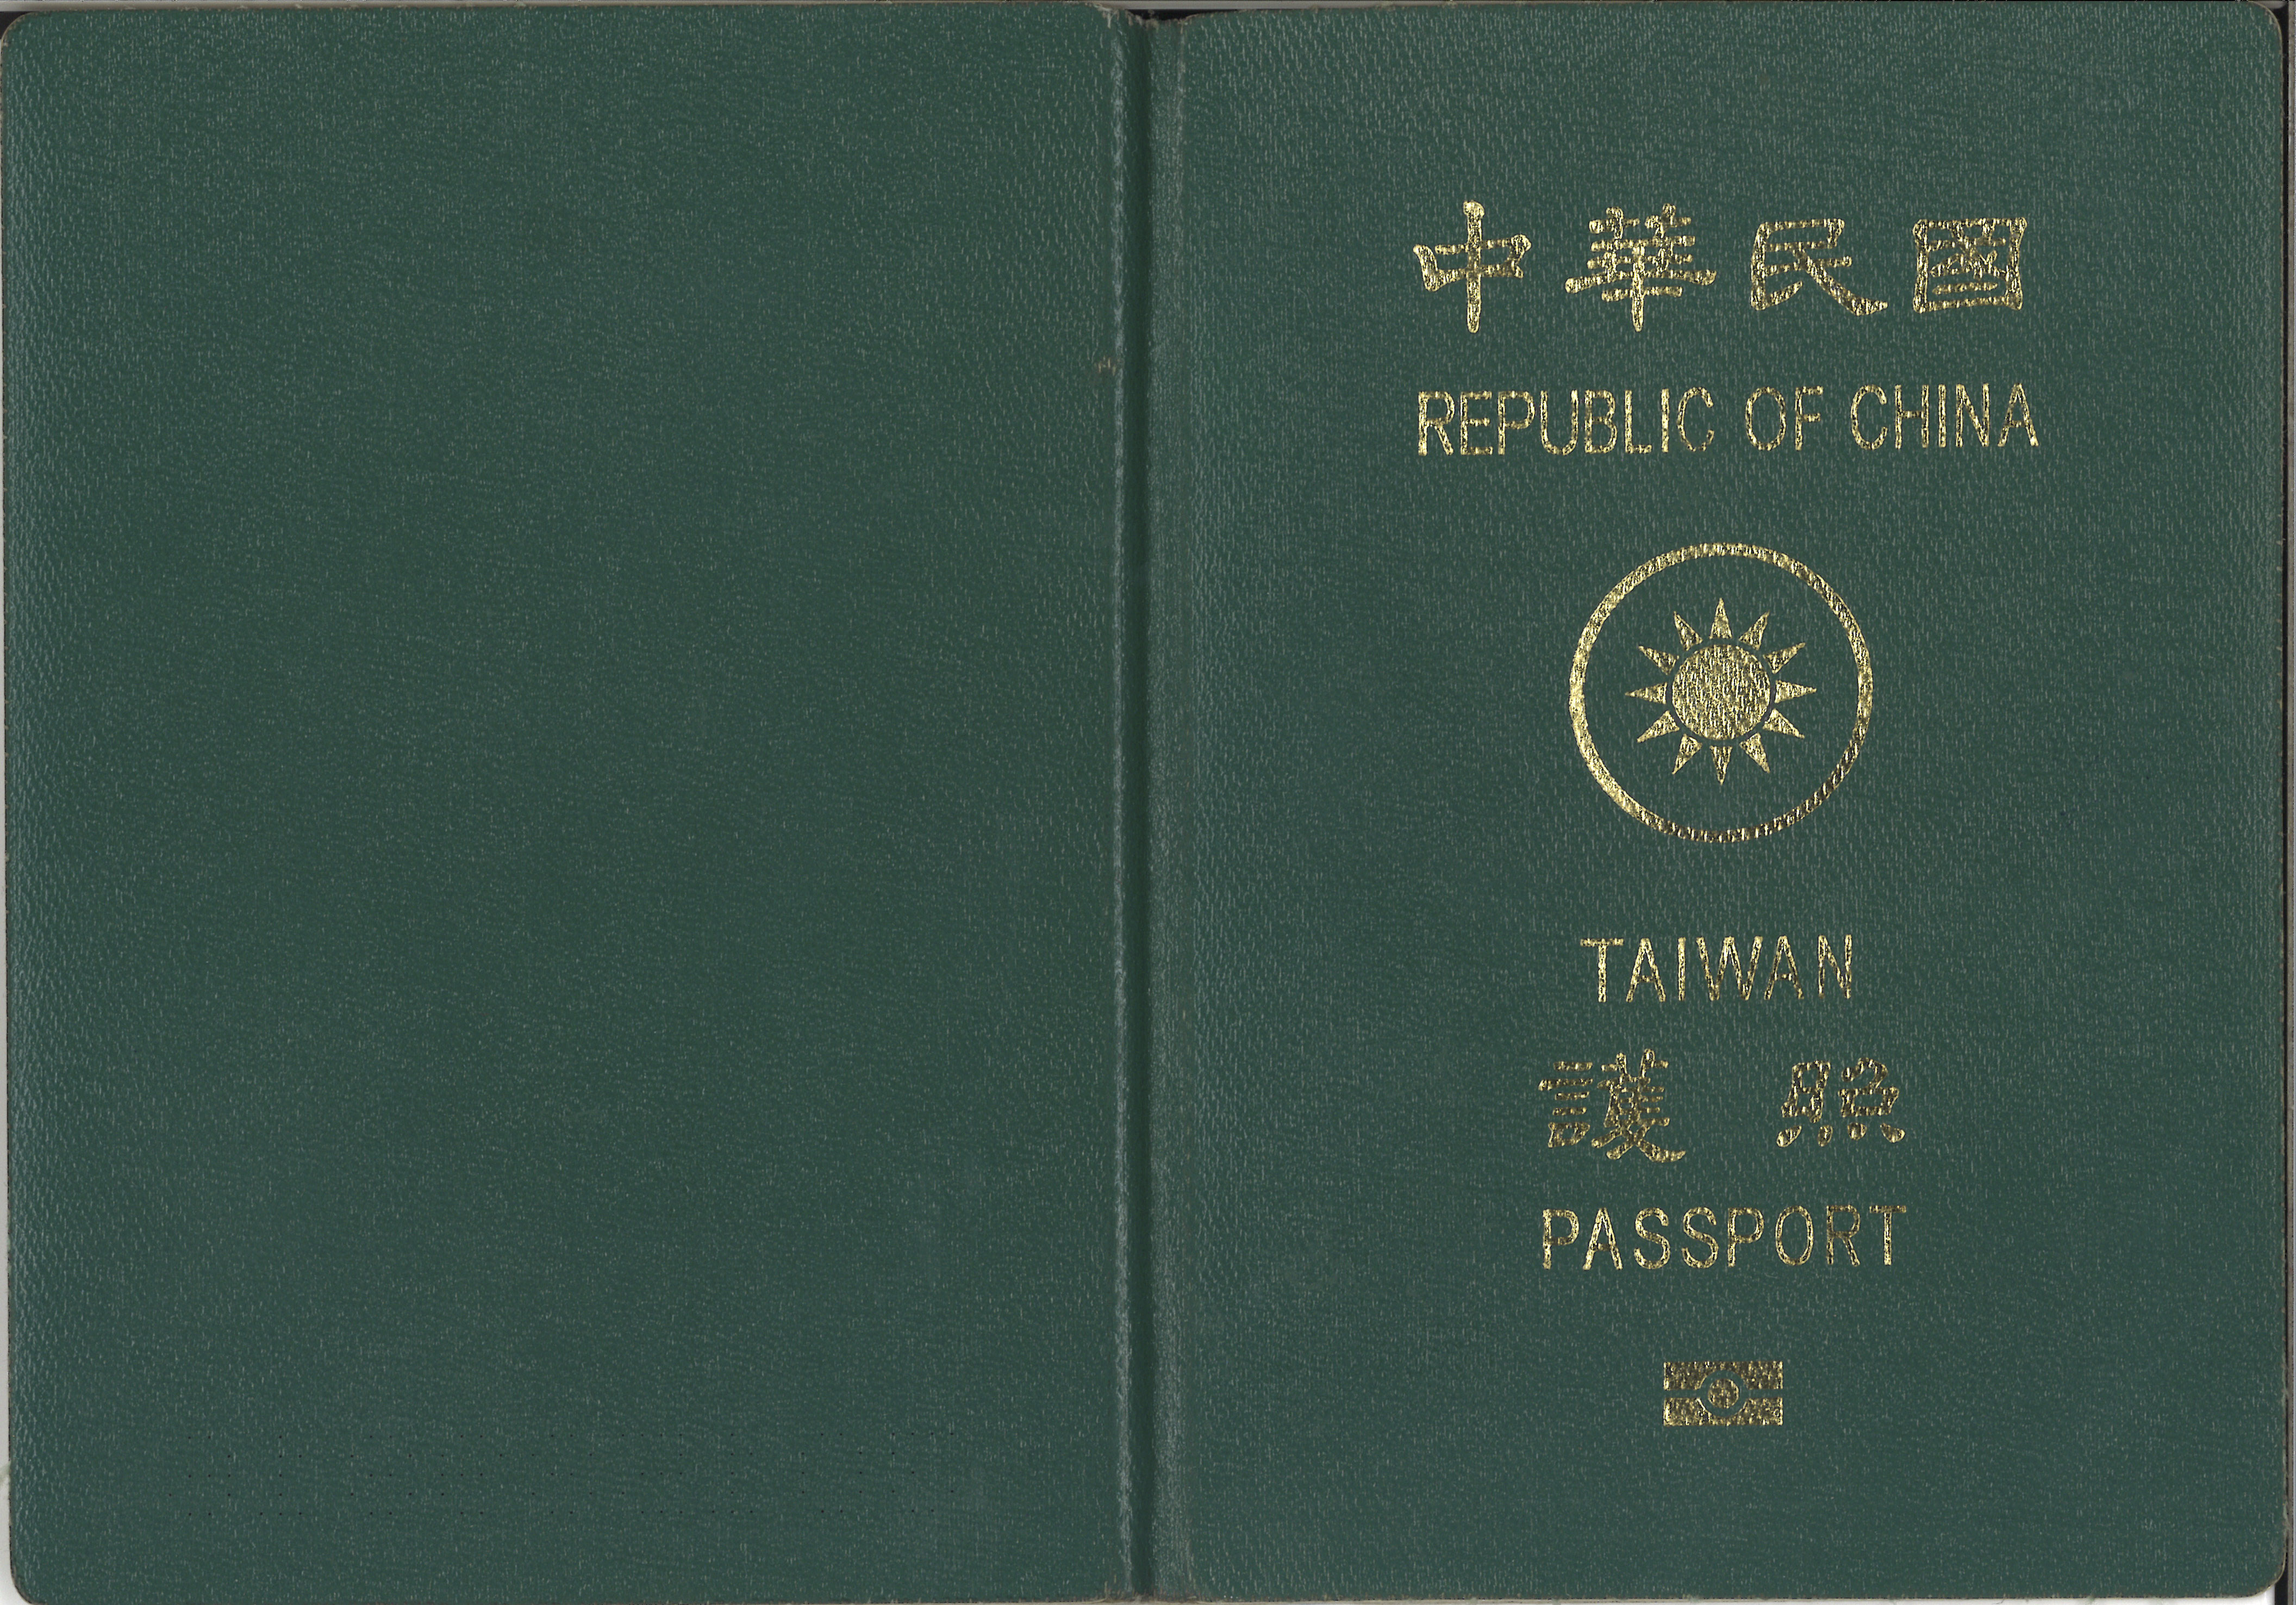 The Taiwan passport grants citizens visa-free access in 134 countries.